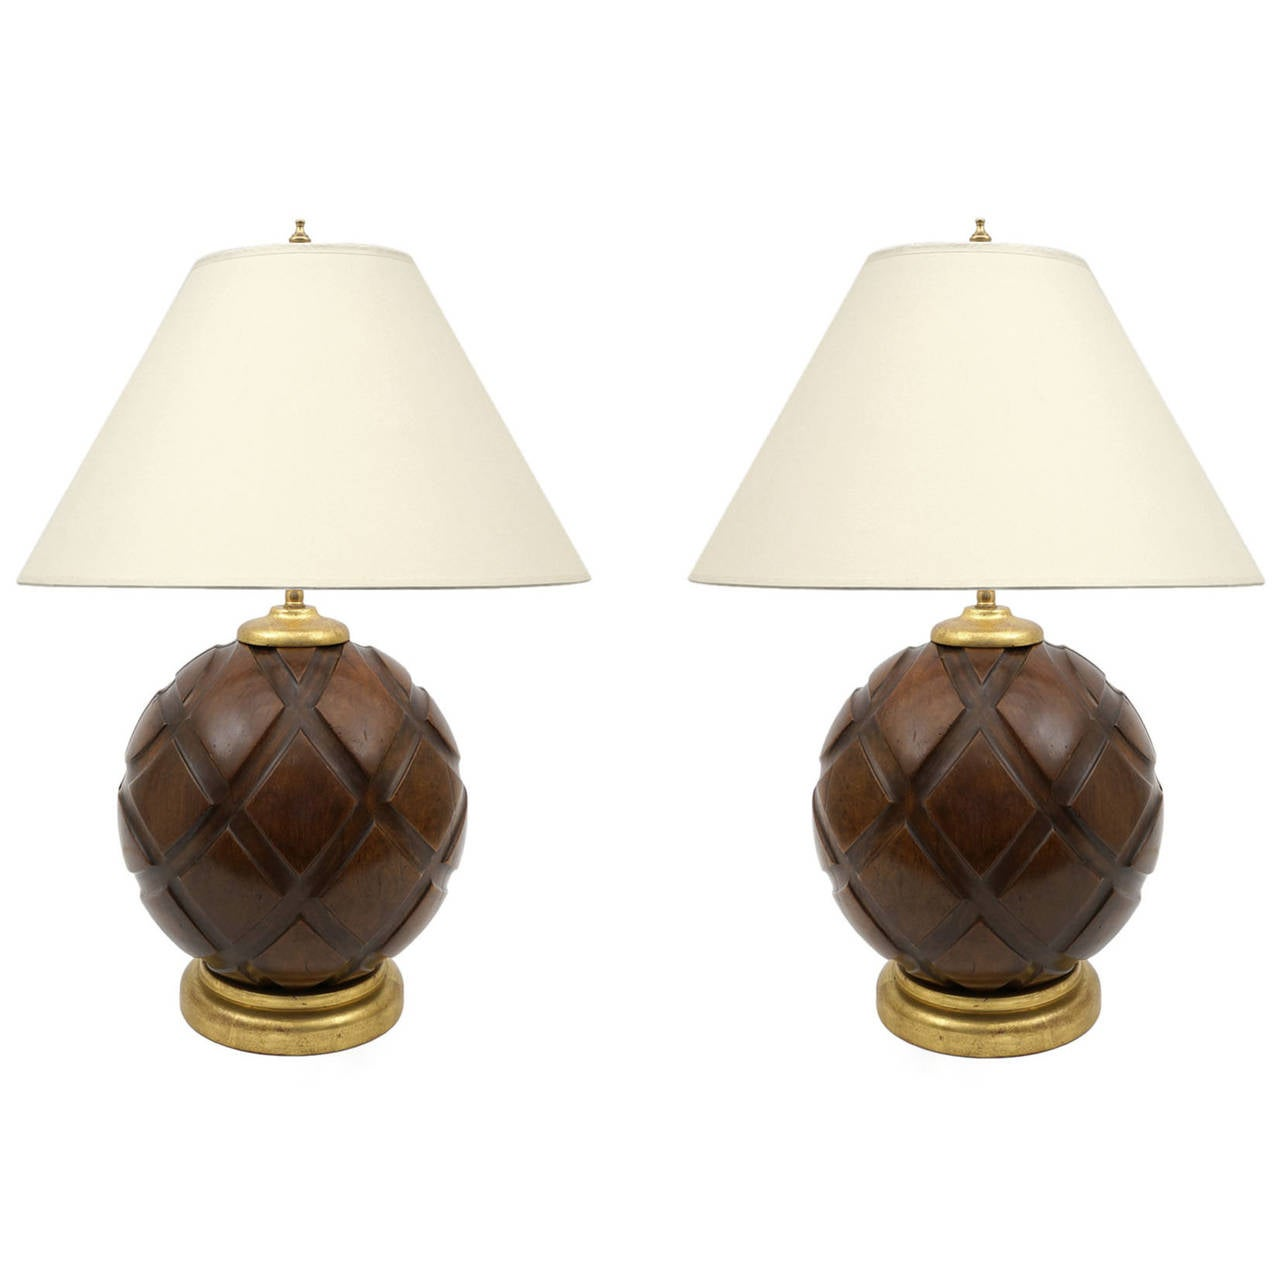 Unique Pair Of Carved Wood Sphere Lamps On Giltwood Bases